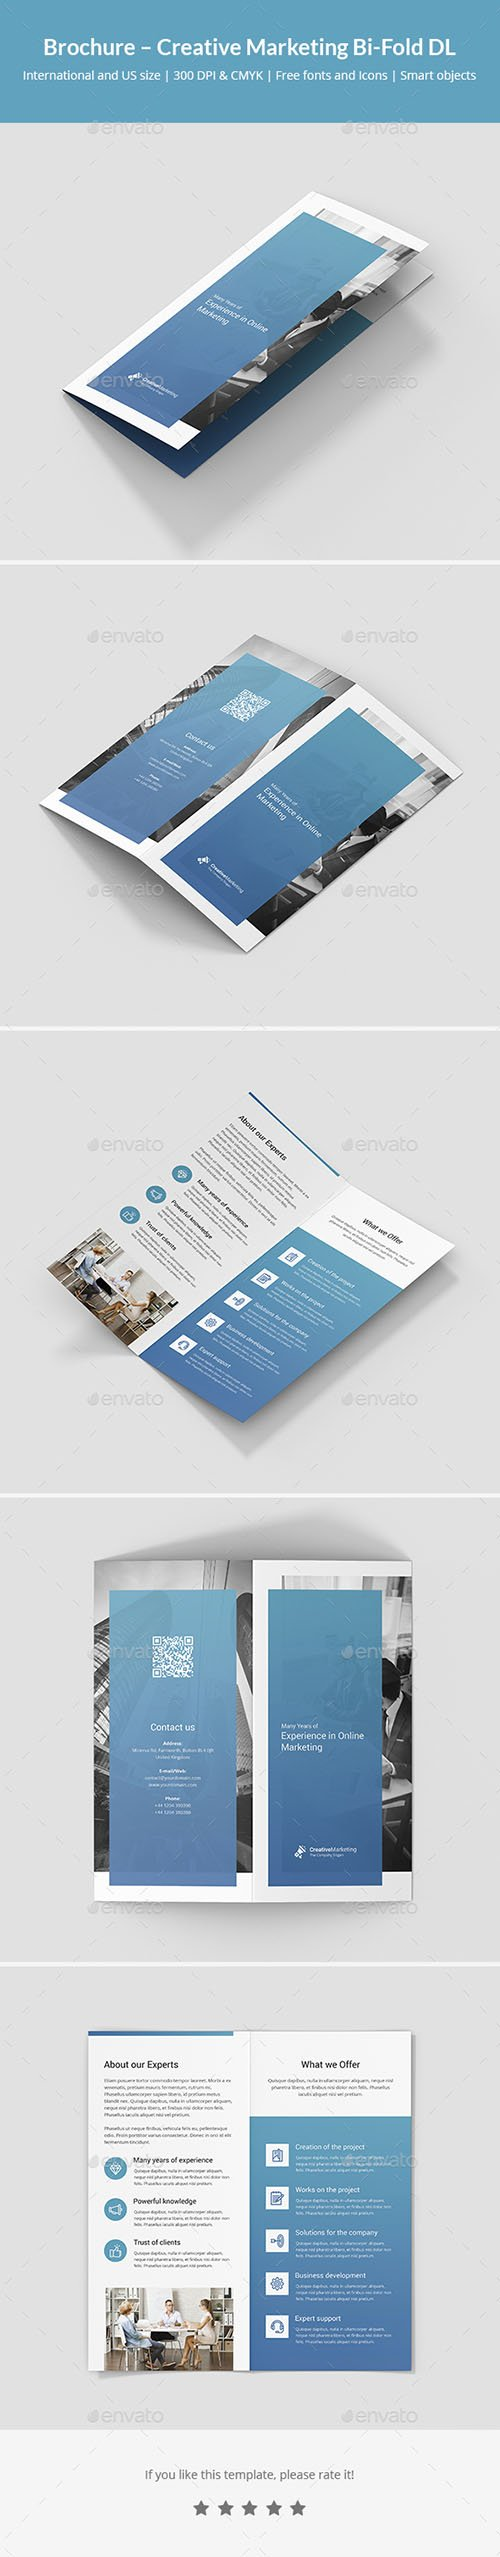 Brochure – Creative Marketing Bi-Fold DL 21403305